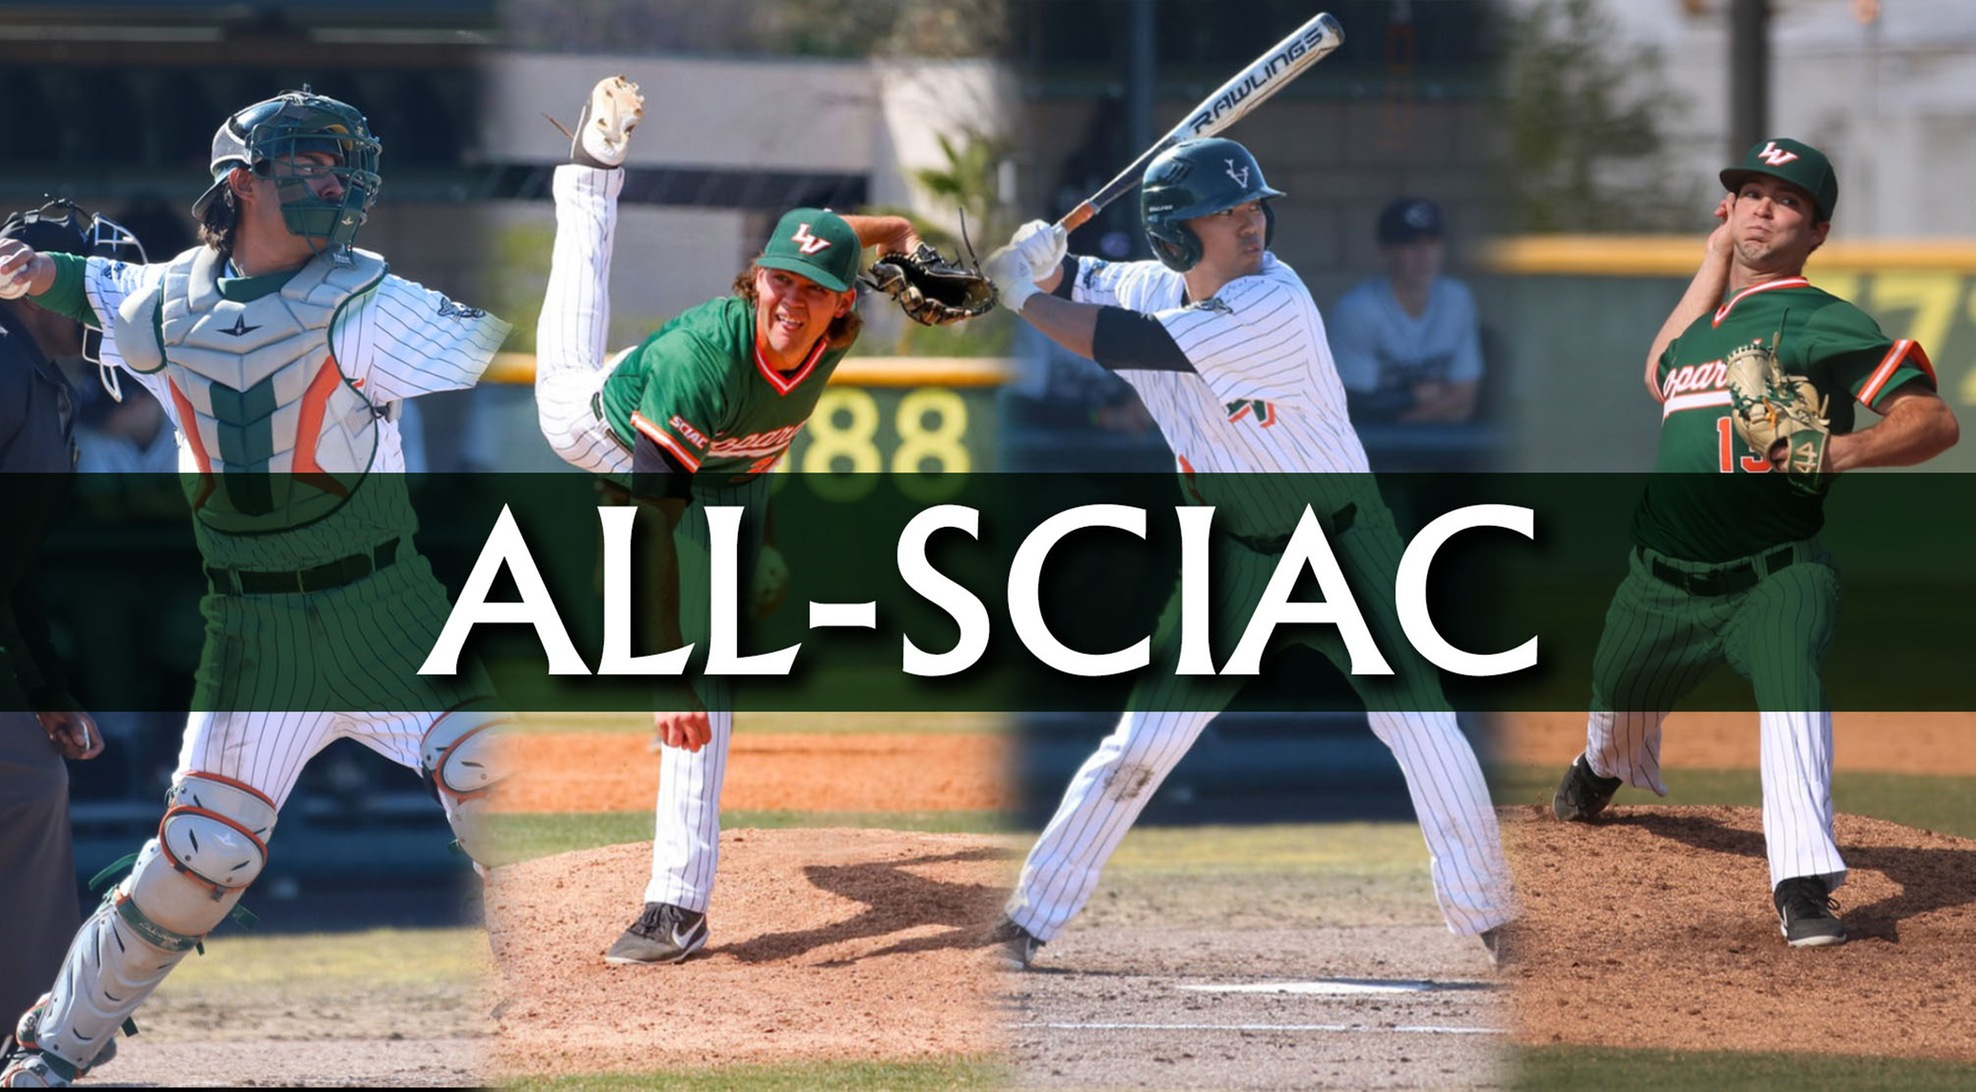 Peres named SCIAC Athlete of the Year, four Leopards tabbed All-SCIAC